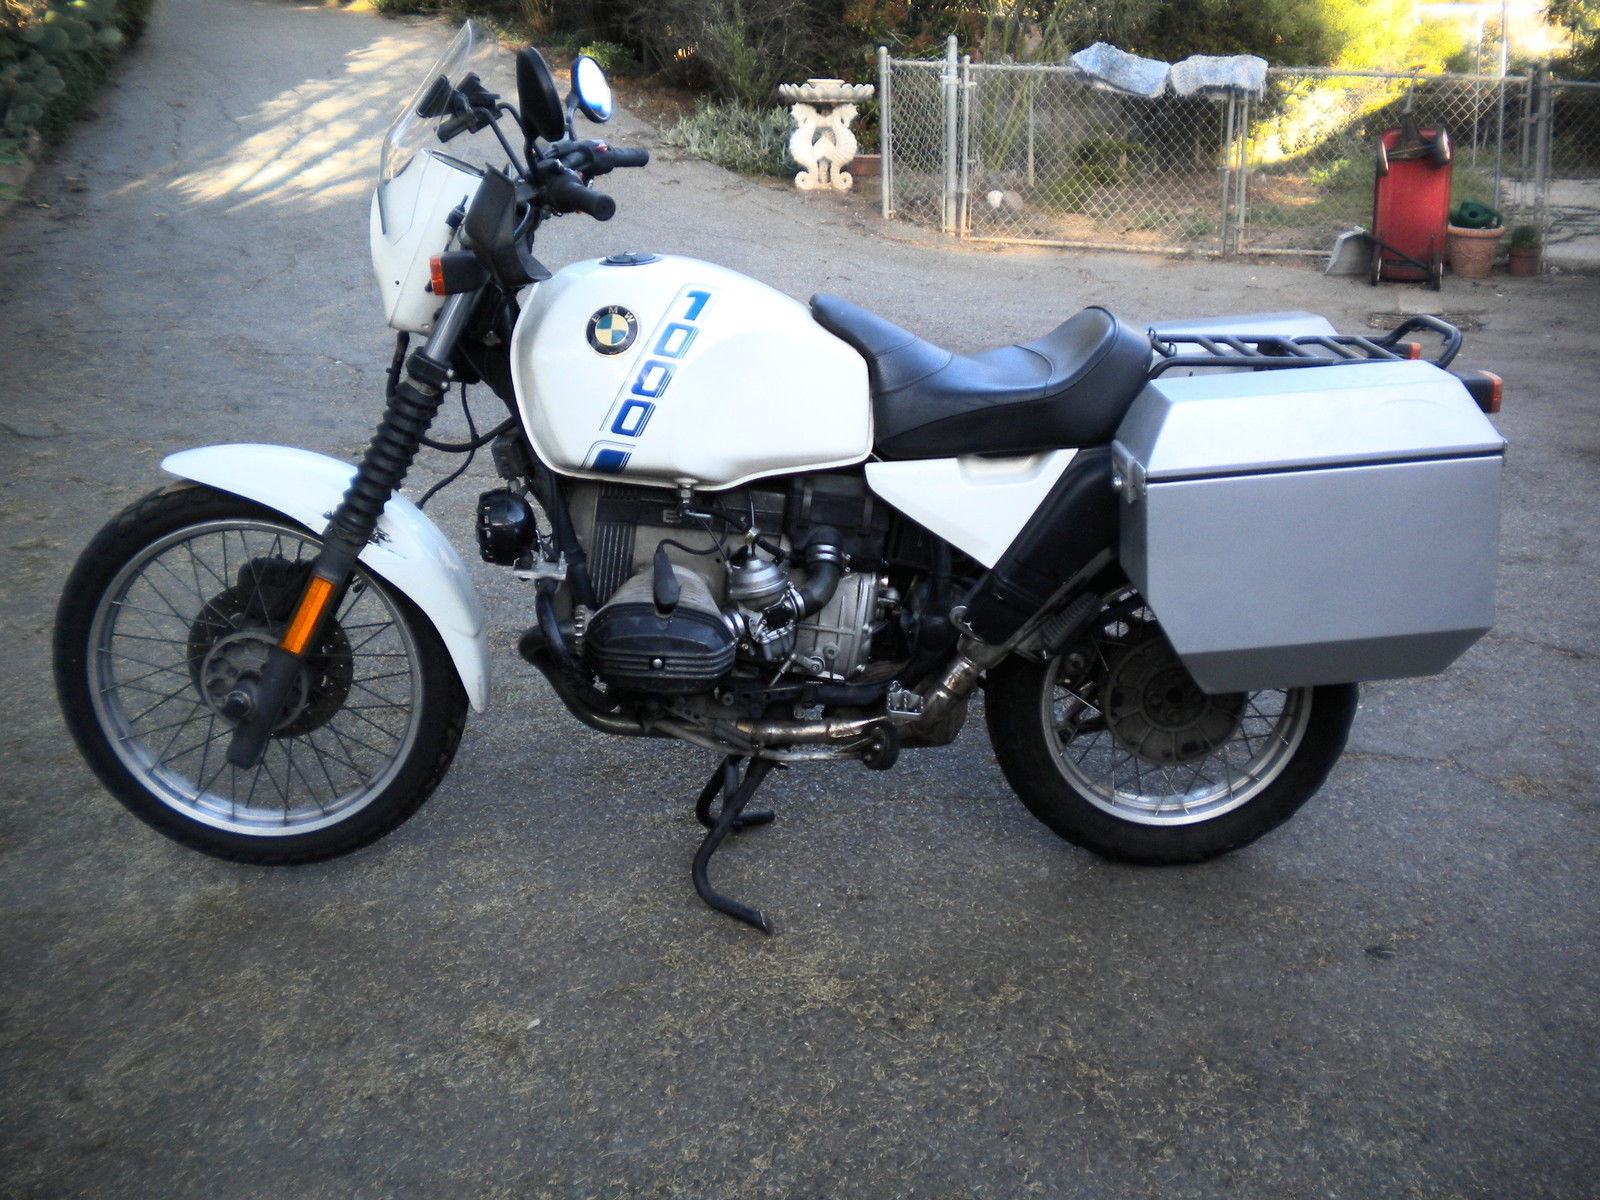 BMW R80GS 1989 images #6008